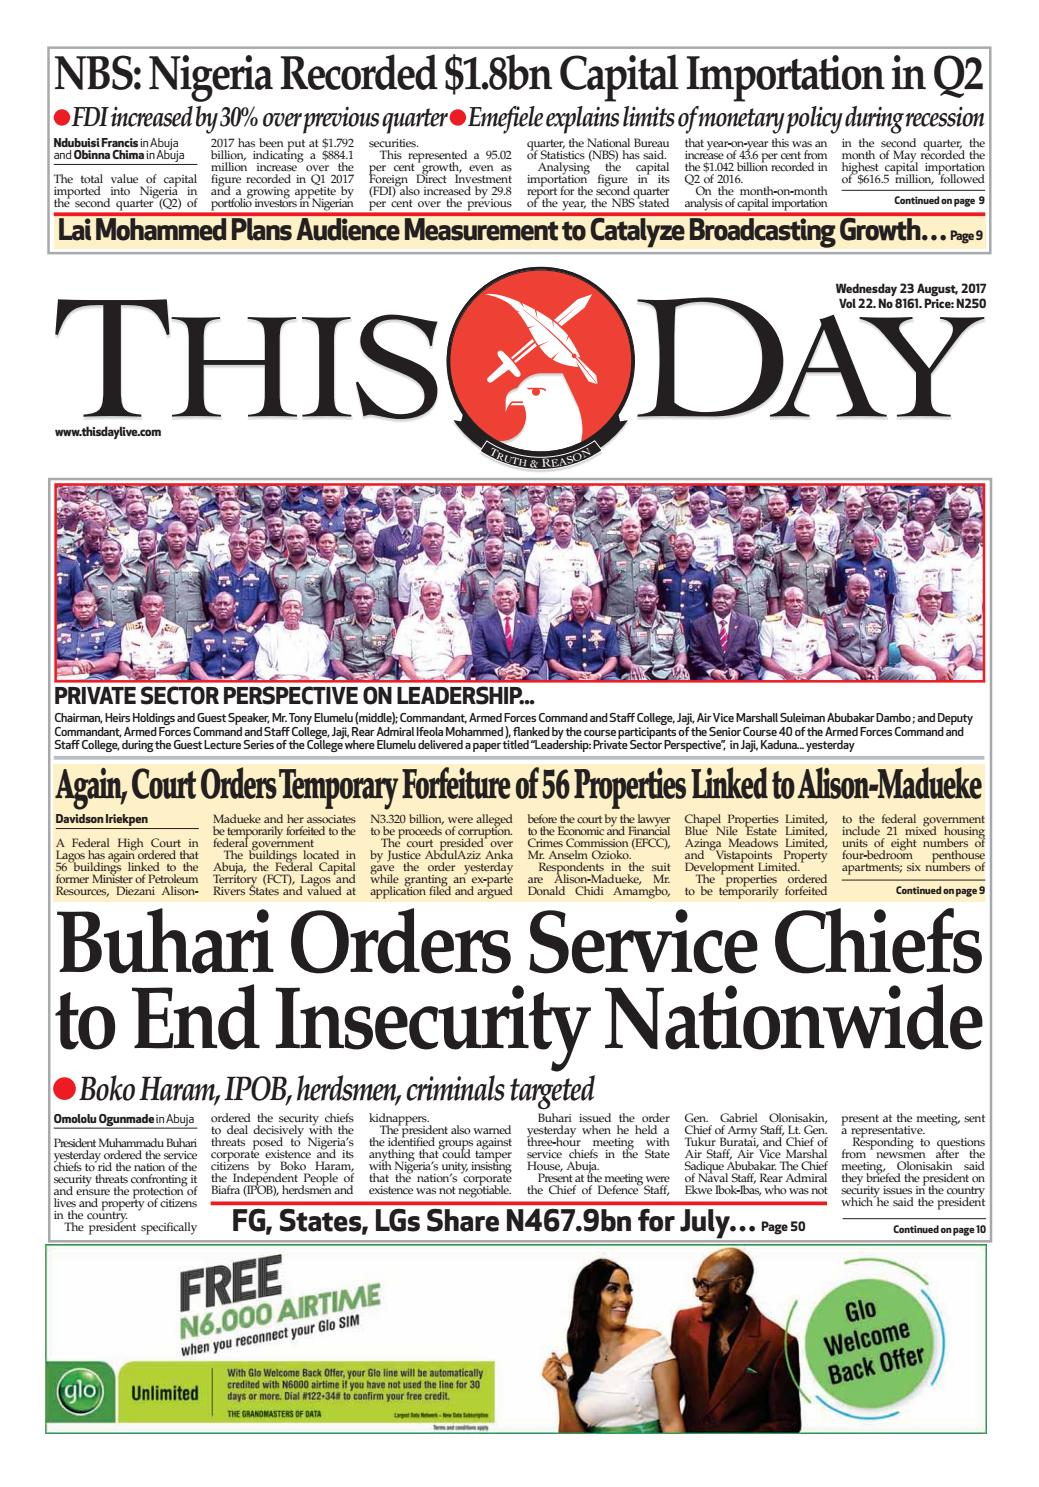 6938defddfe Wednesday 23rd August 2017 by THISDAY Newspapers Ltd - issuu